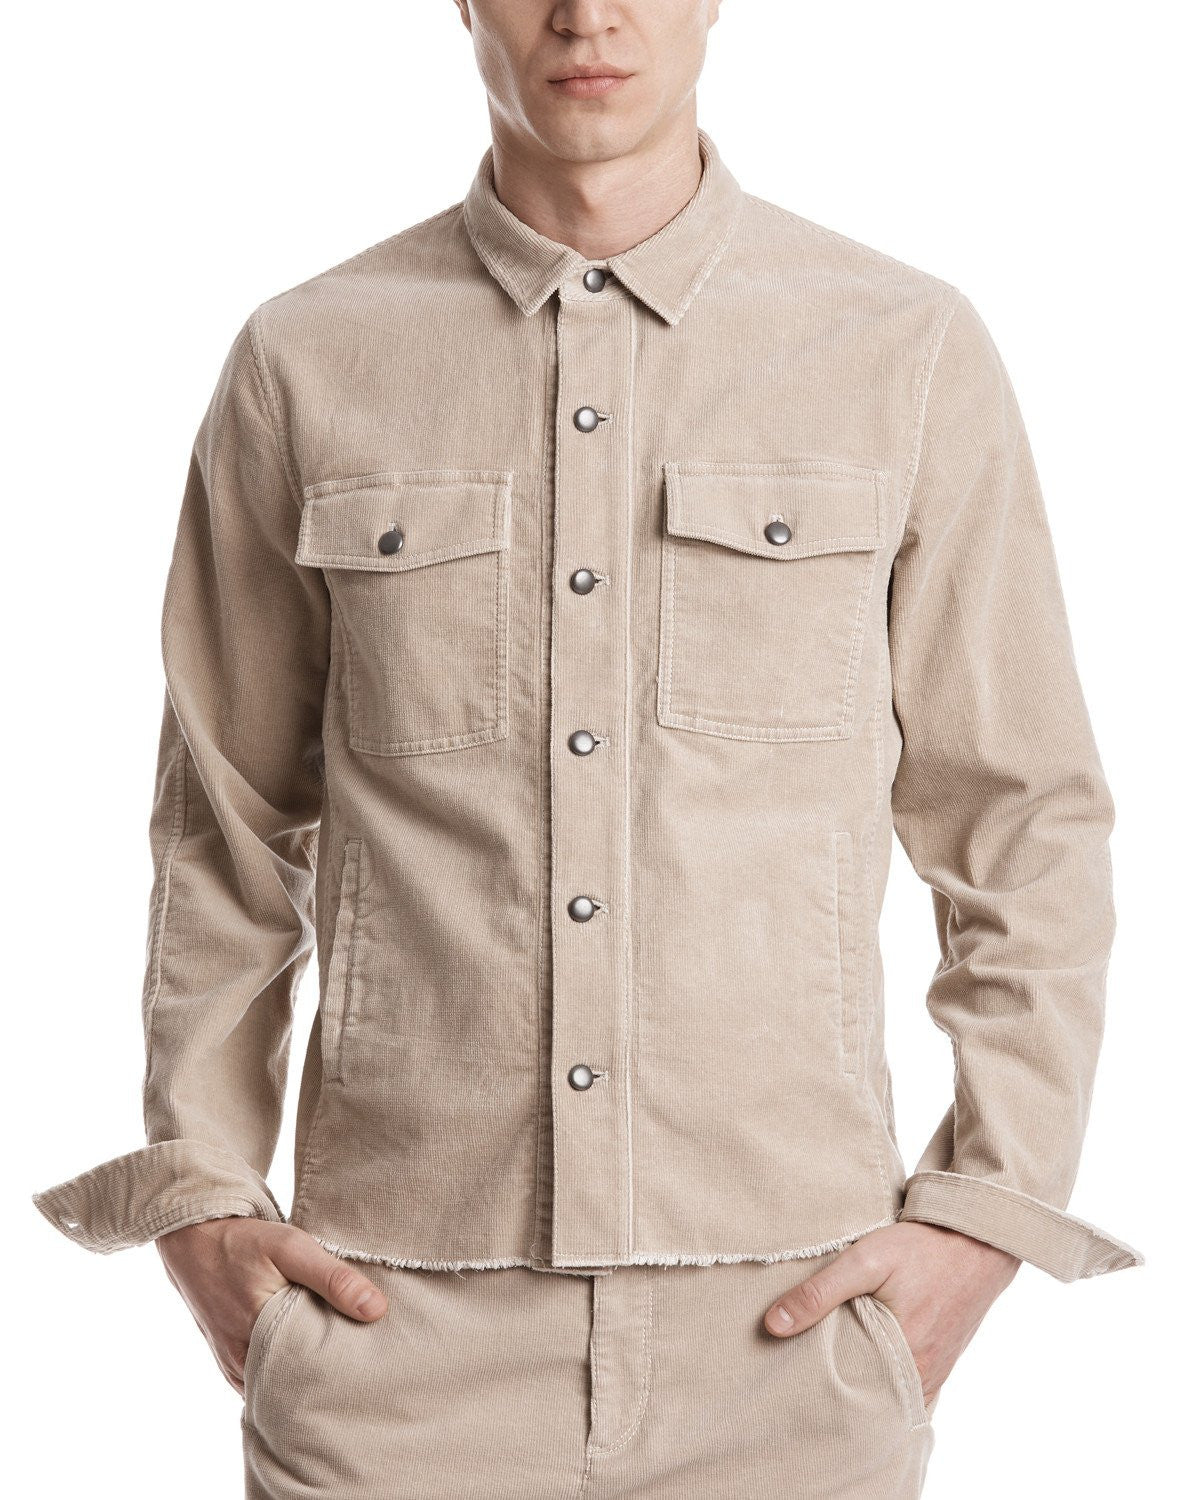 ATM Washed Corduroy Overshirt